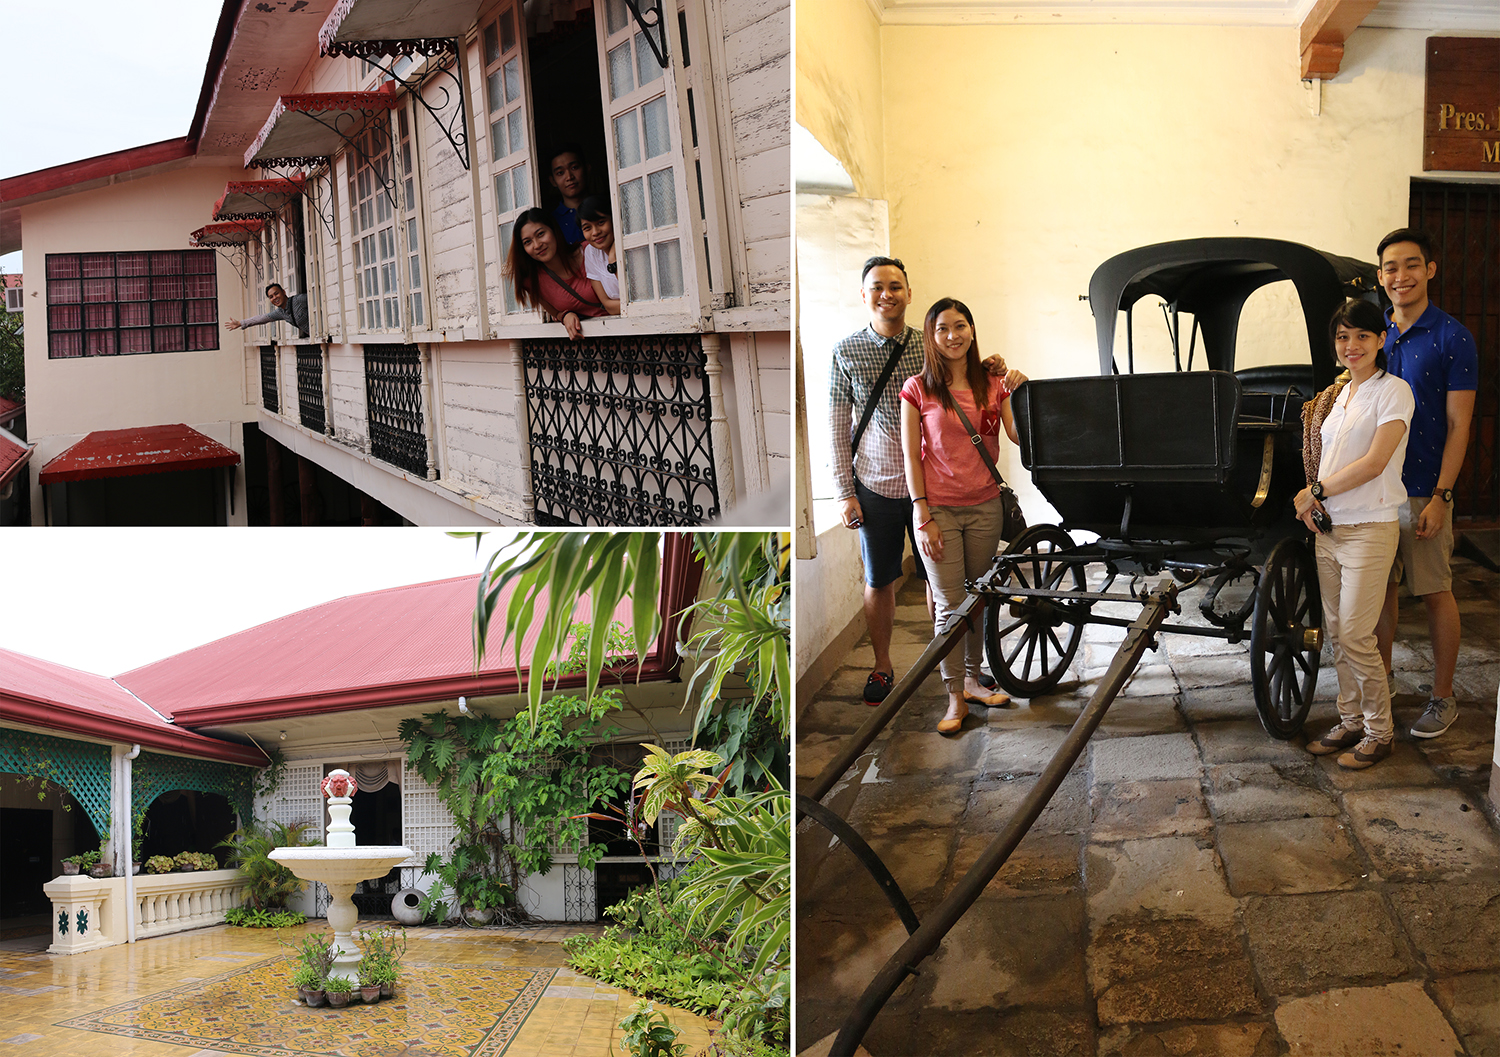 travel Vigan Ilocos Tour Sur Philippines tour tourism Syquia Mansion Elpidio Quirino